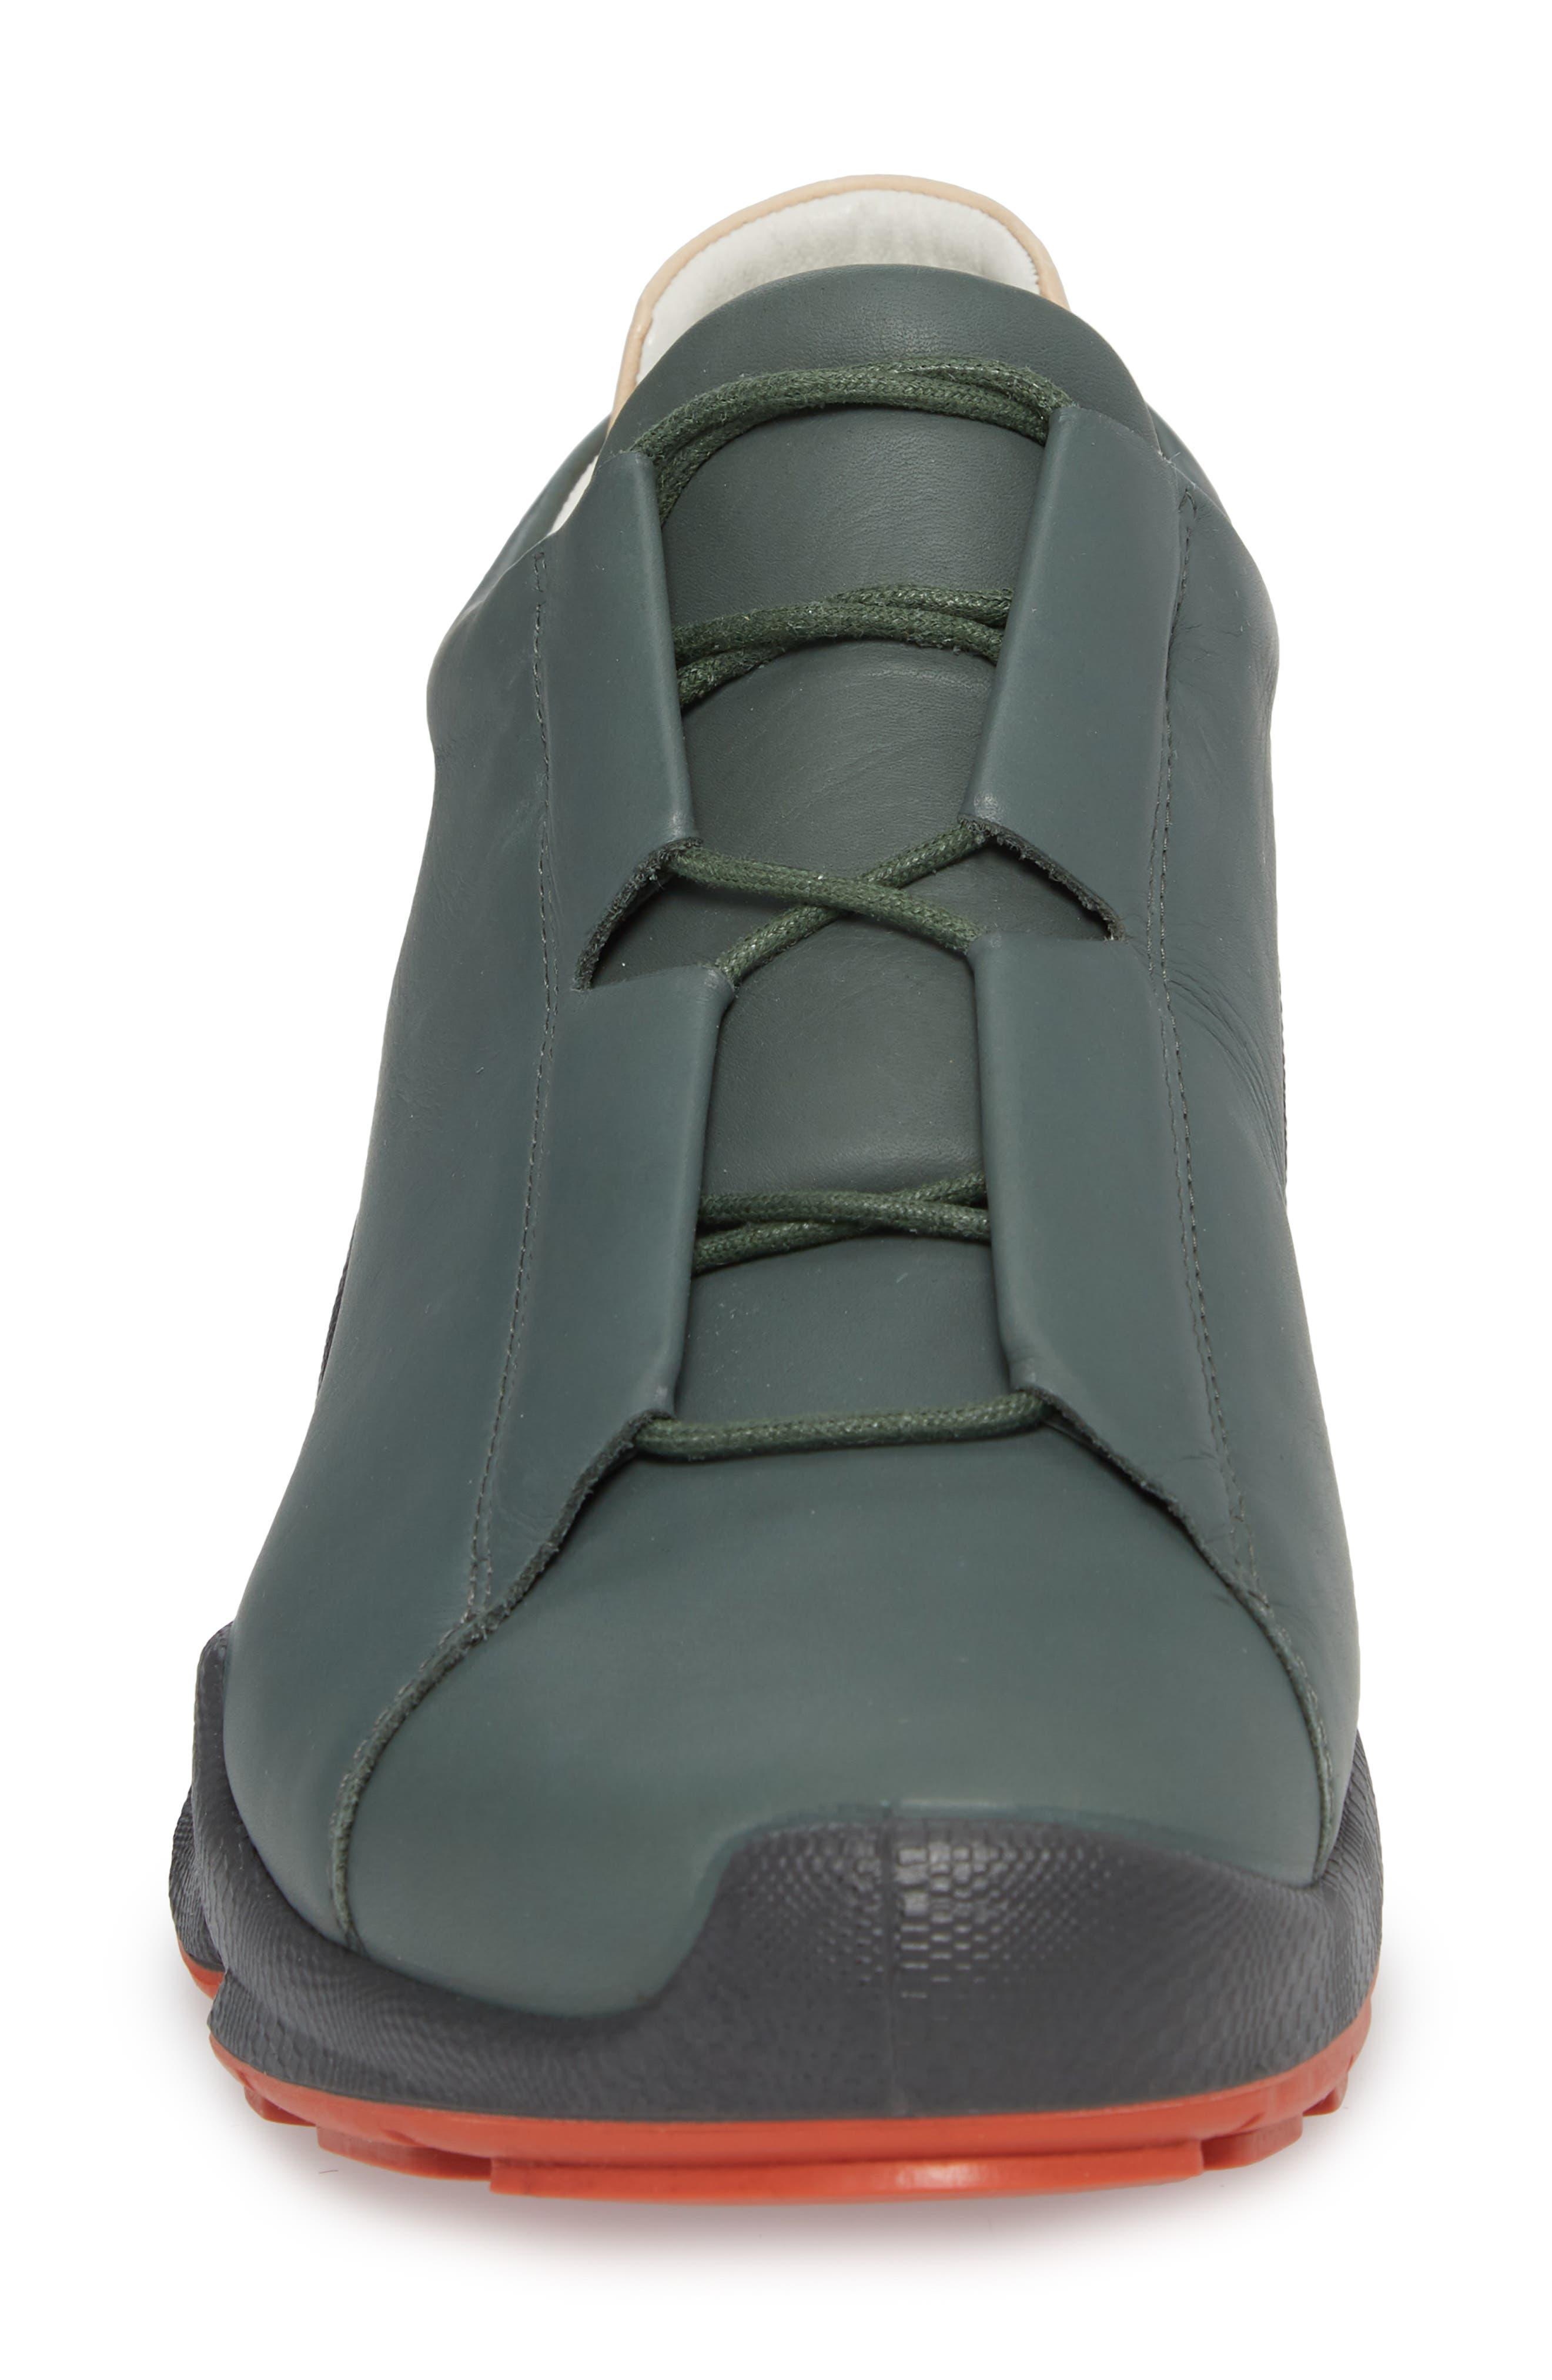 BIOM C Low Top Sneaker,                             Alternate thumbnail 3, color,                             Military Sage Leather